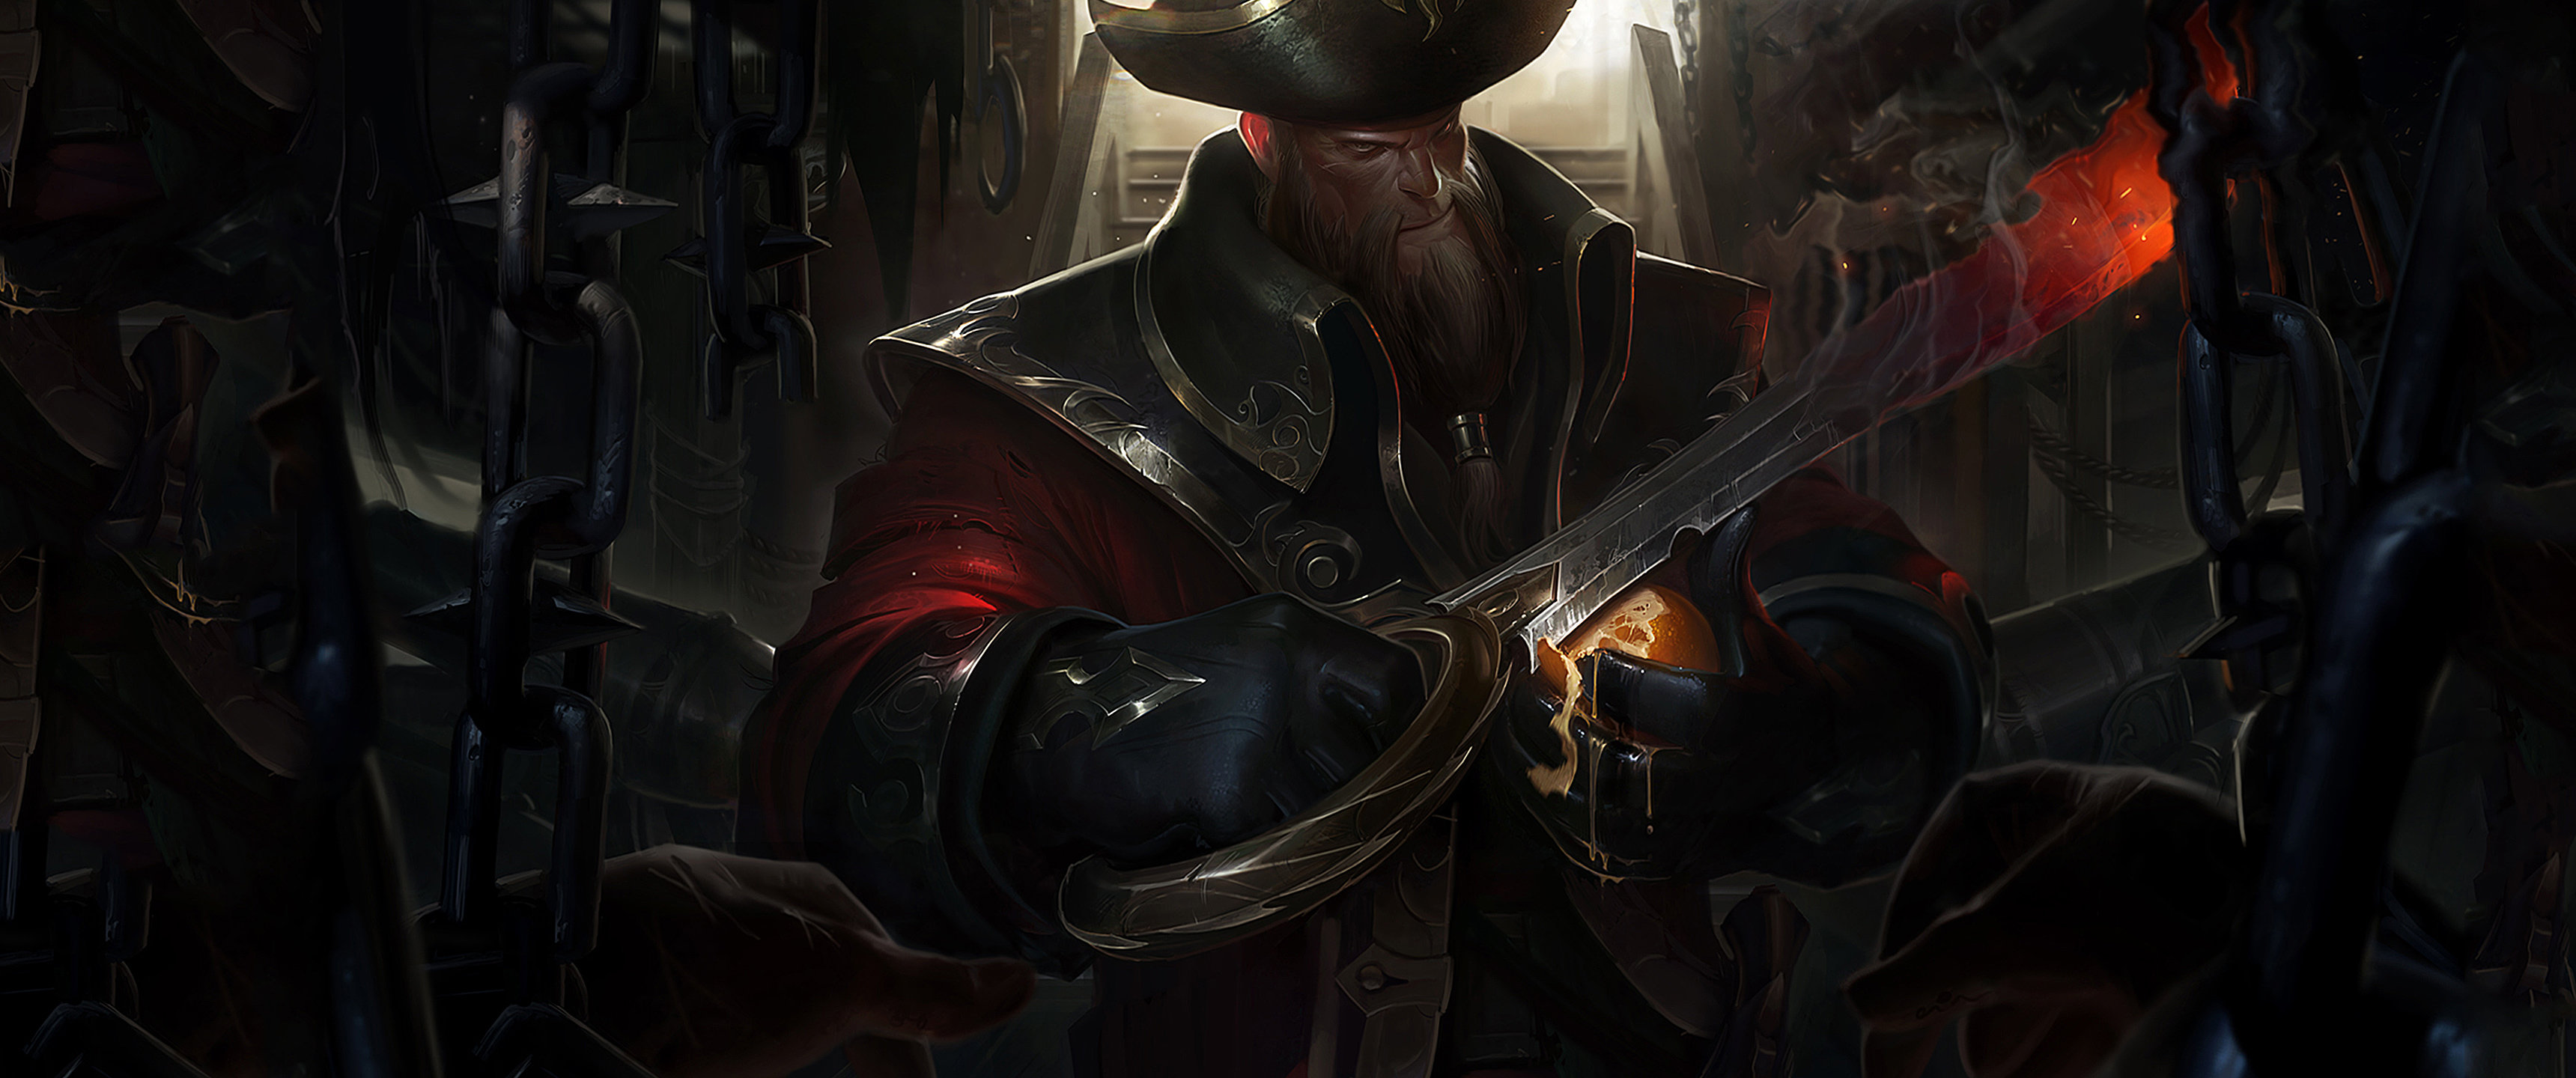 Download hd 3440x1440 Gangplank (League Of Legends) PC wallpaper ID:172568 for free